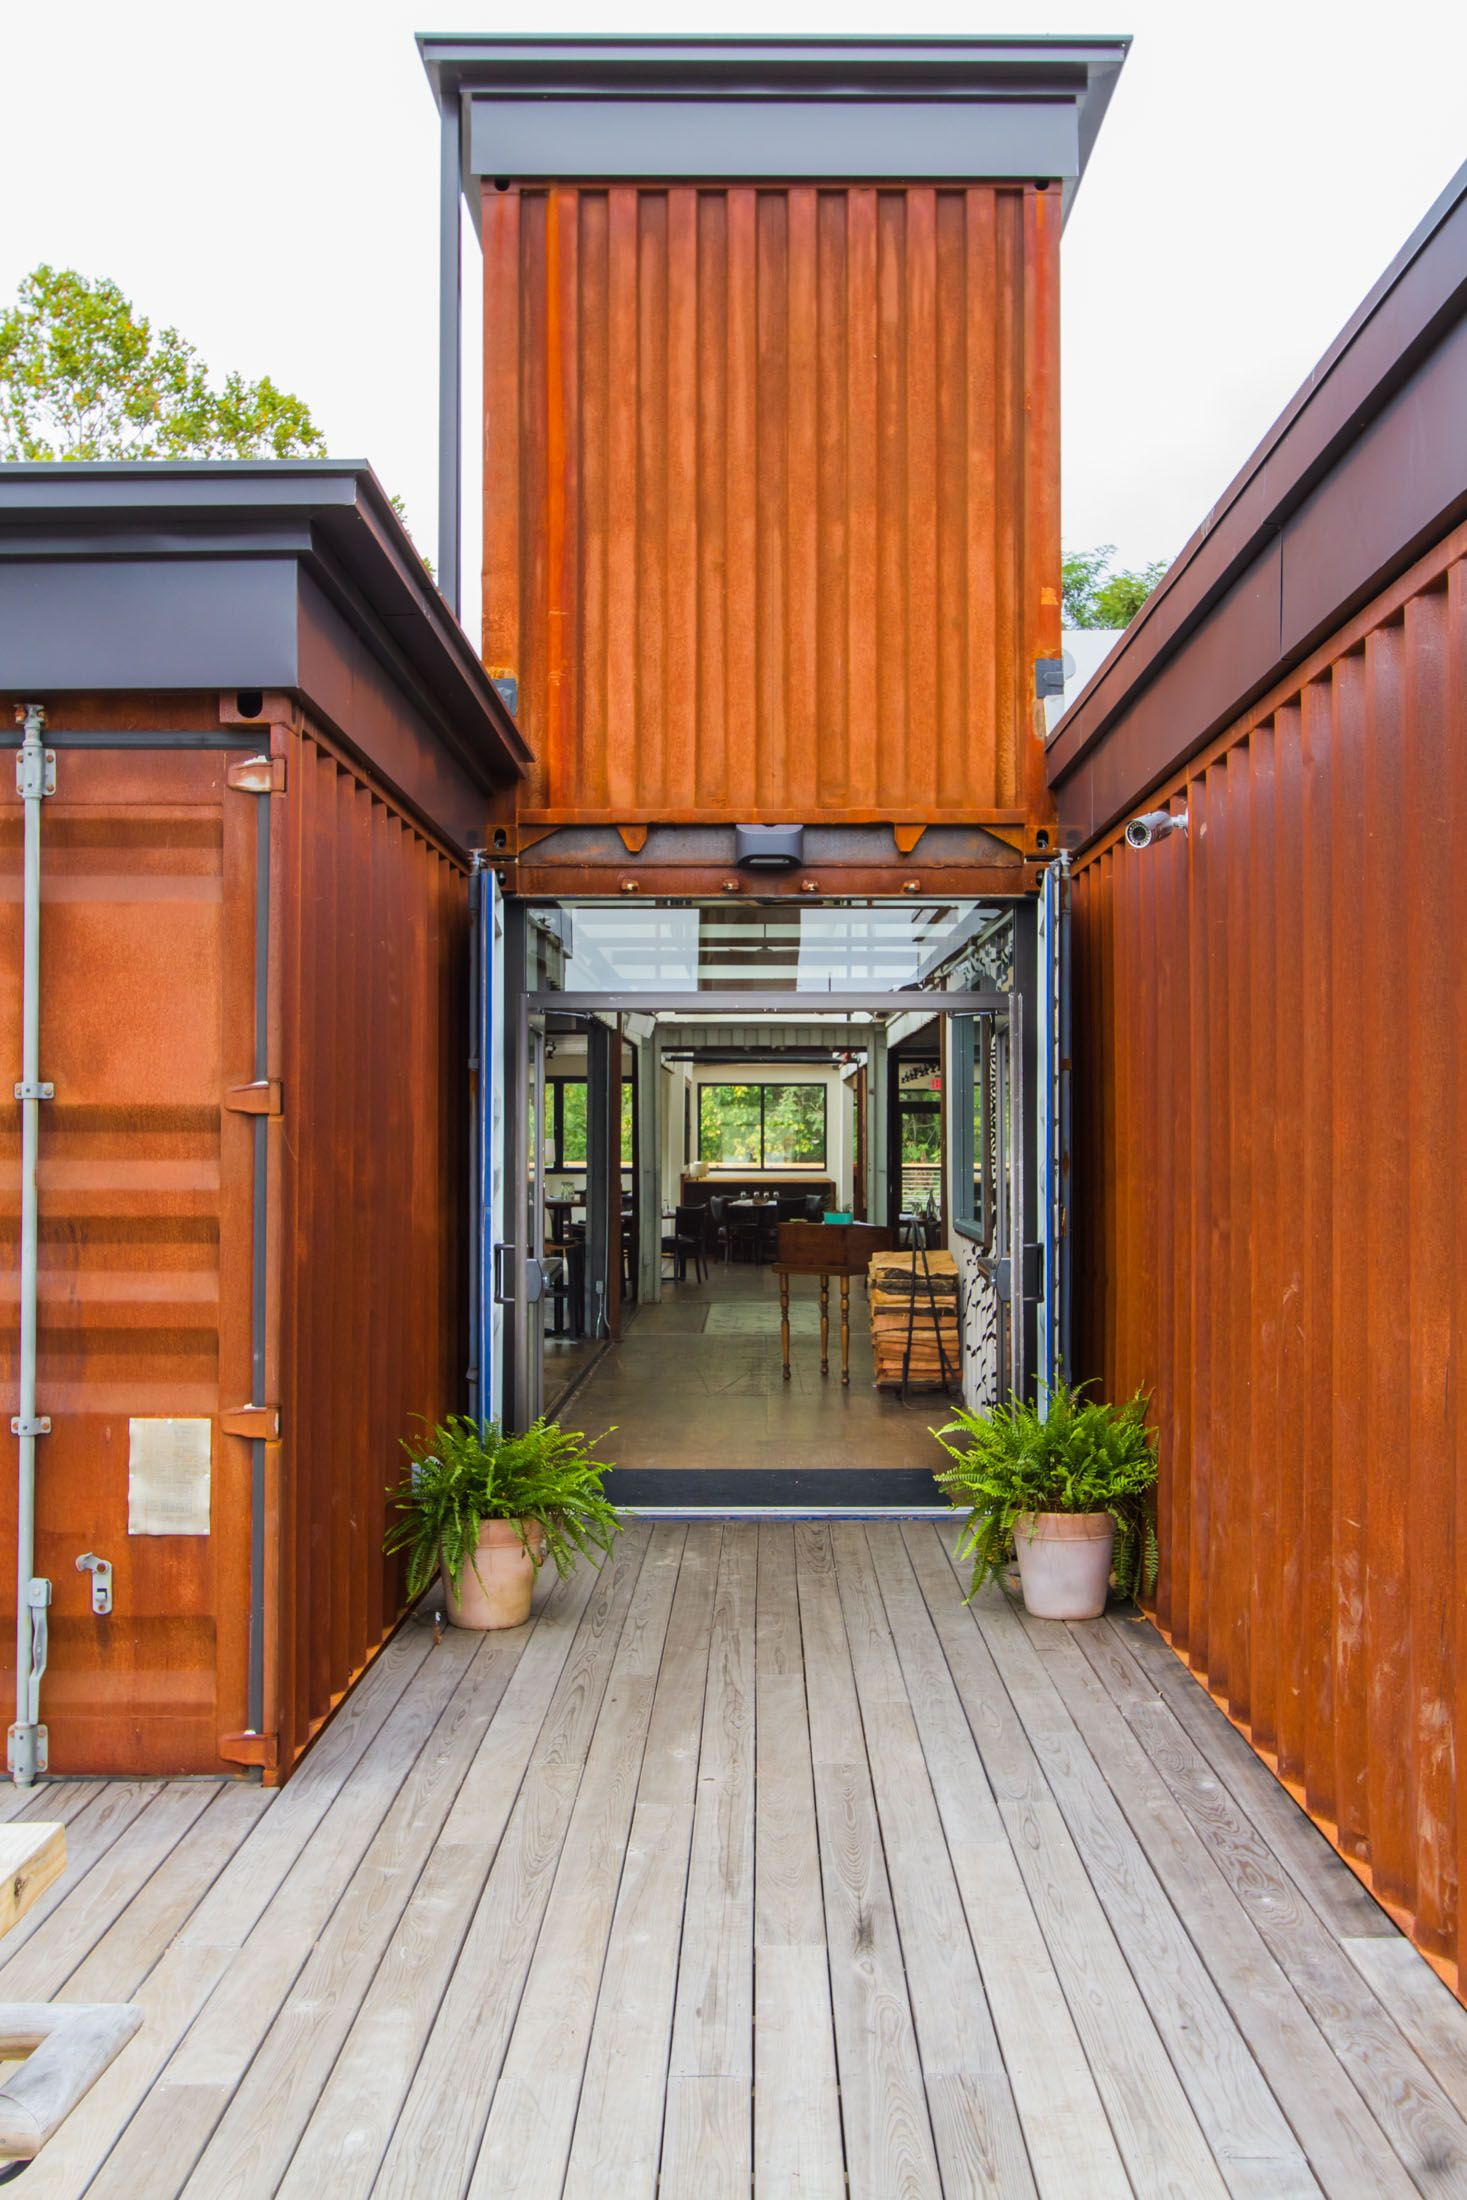 Container Haus Park Container Tiny House Plans Container Plan Container House